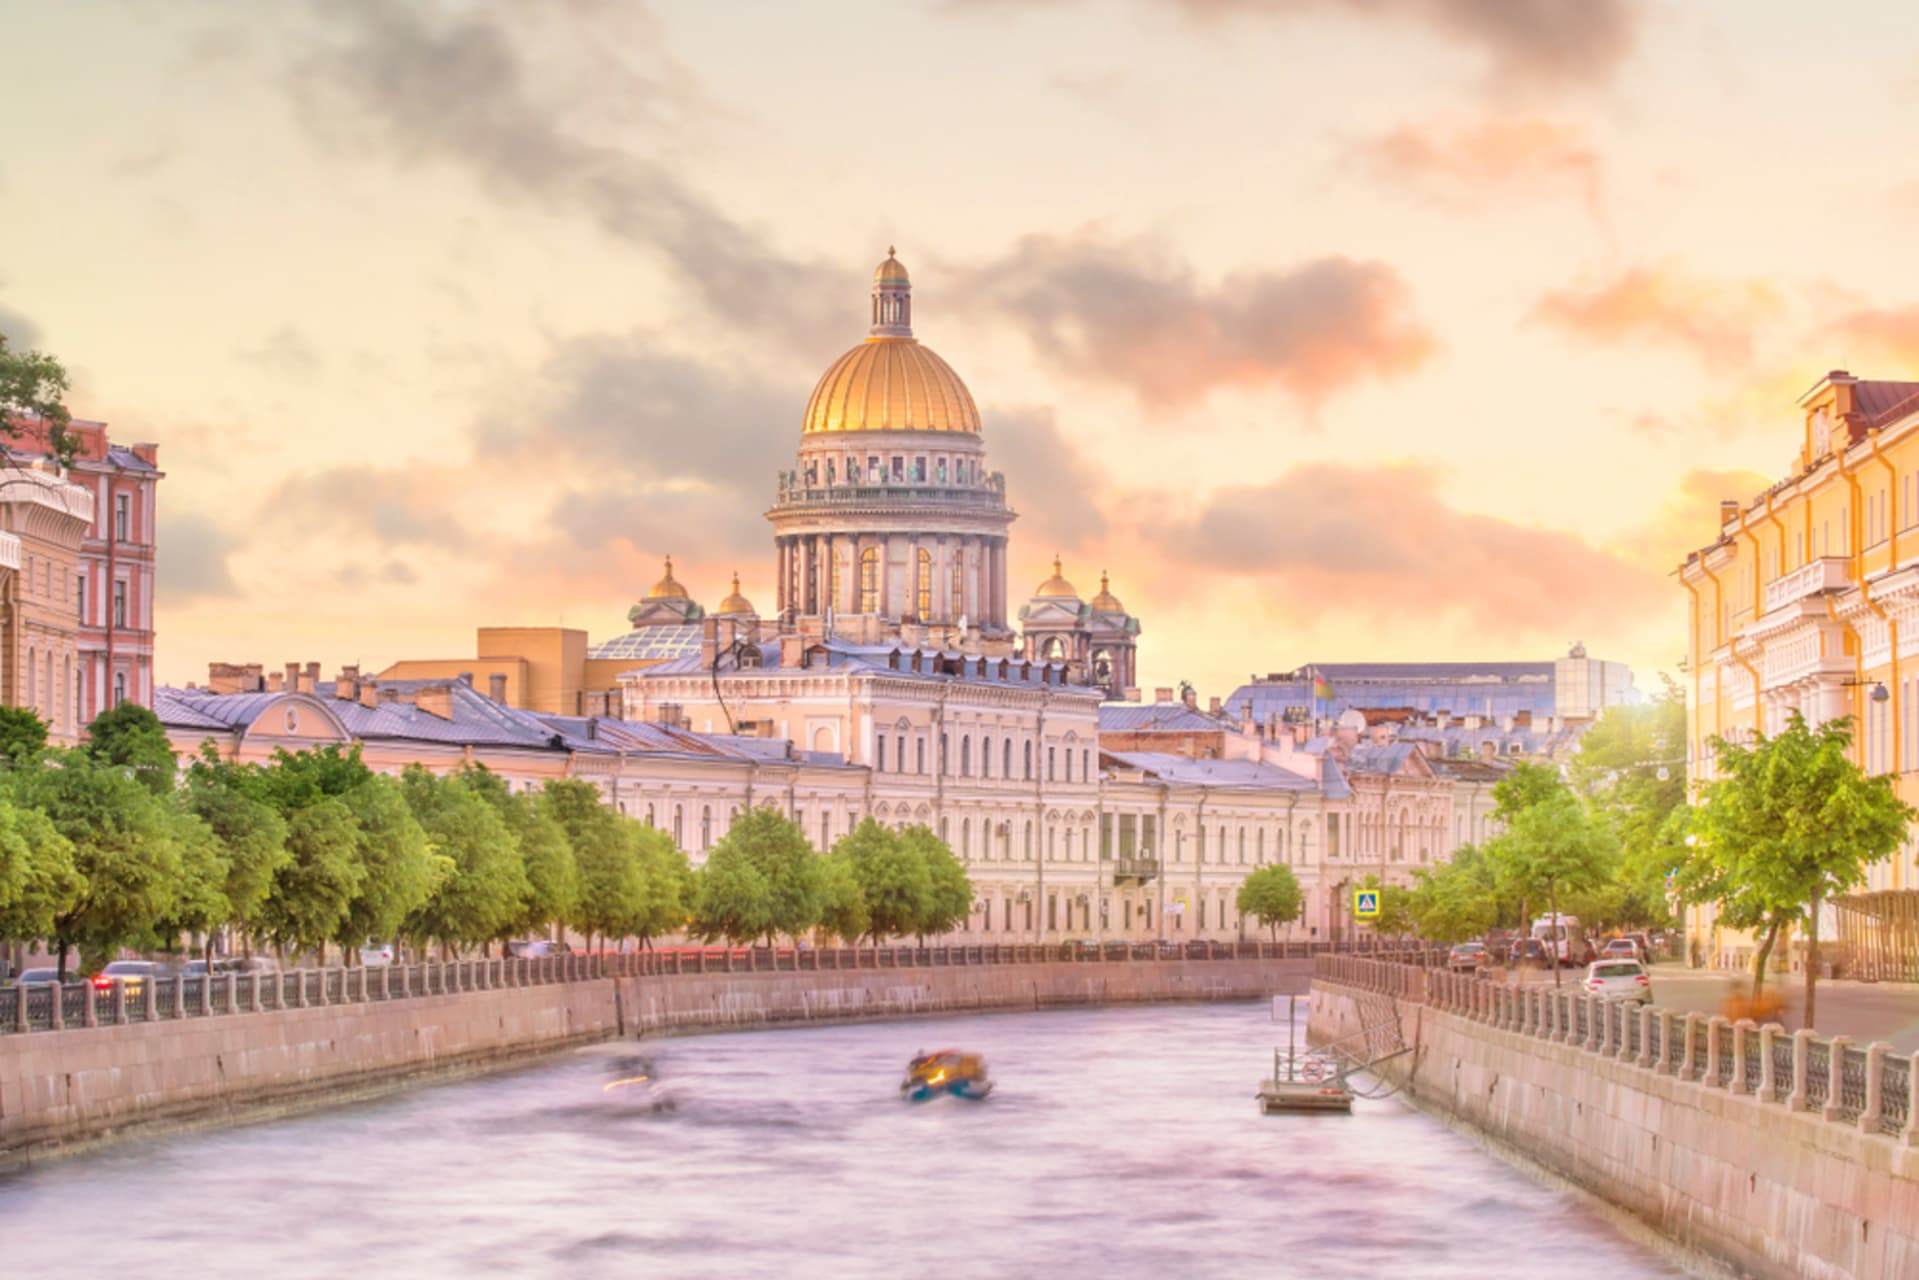 Saint Petersburg - Women and Other Gems of Saint Petersburg - Offbeat Spots of the Moyka River